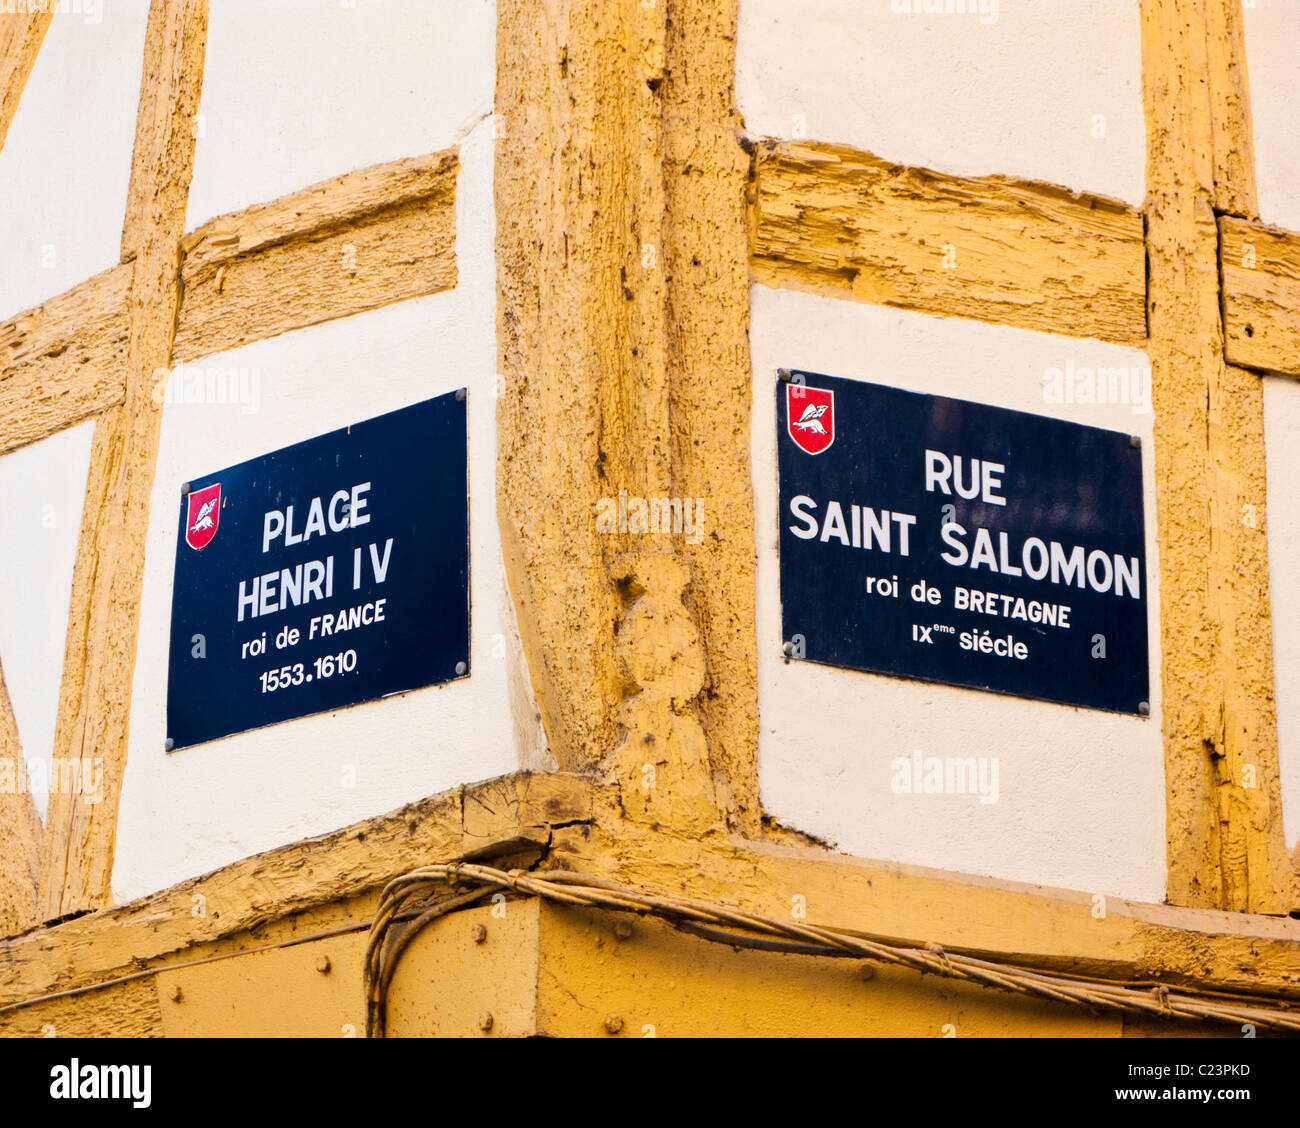 Place Henri IV and Rue Saint Solomon street signs in Vannes, Morbihan, Brittany, France, Europe - Stock Image